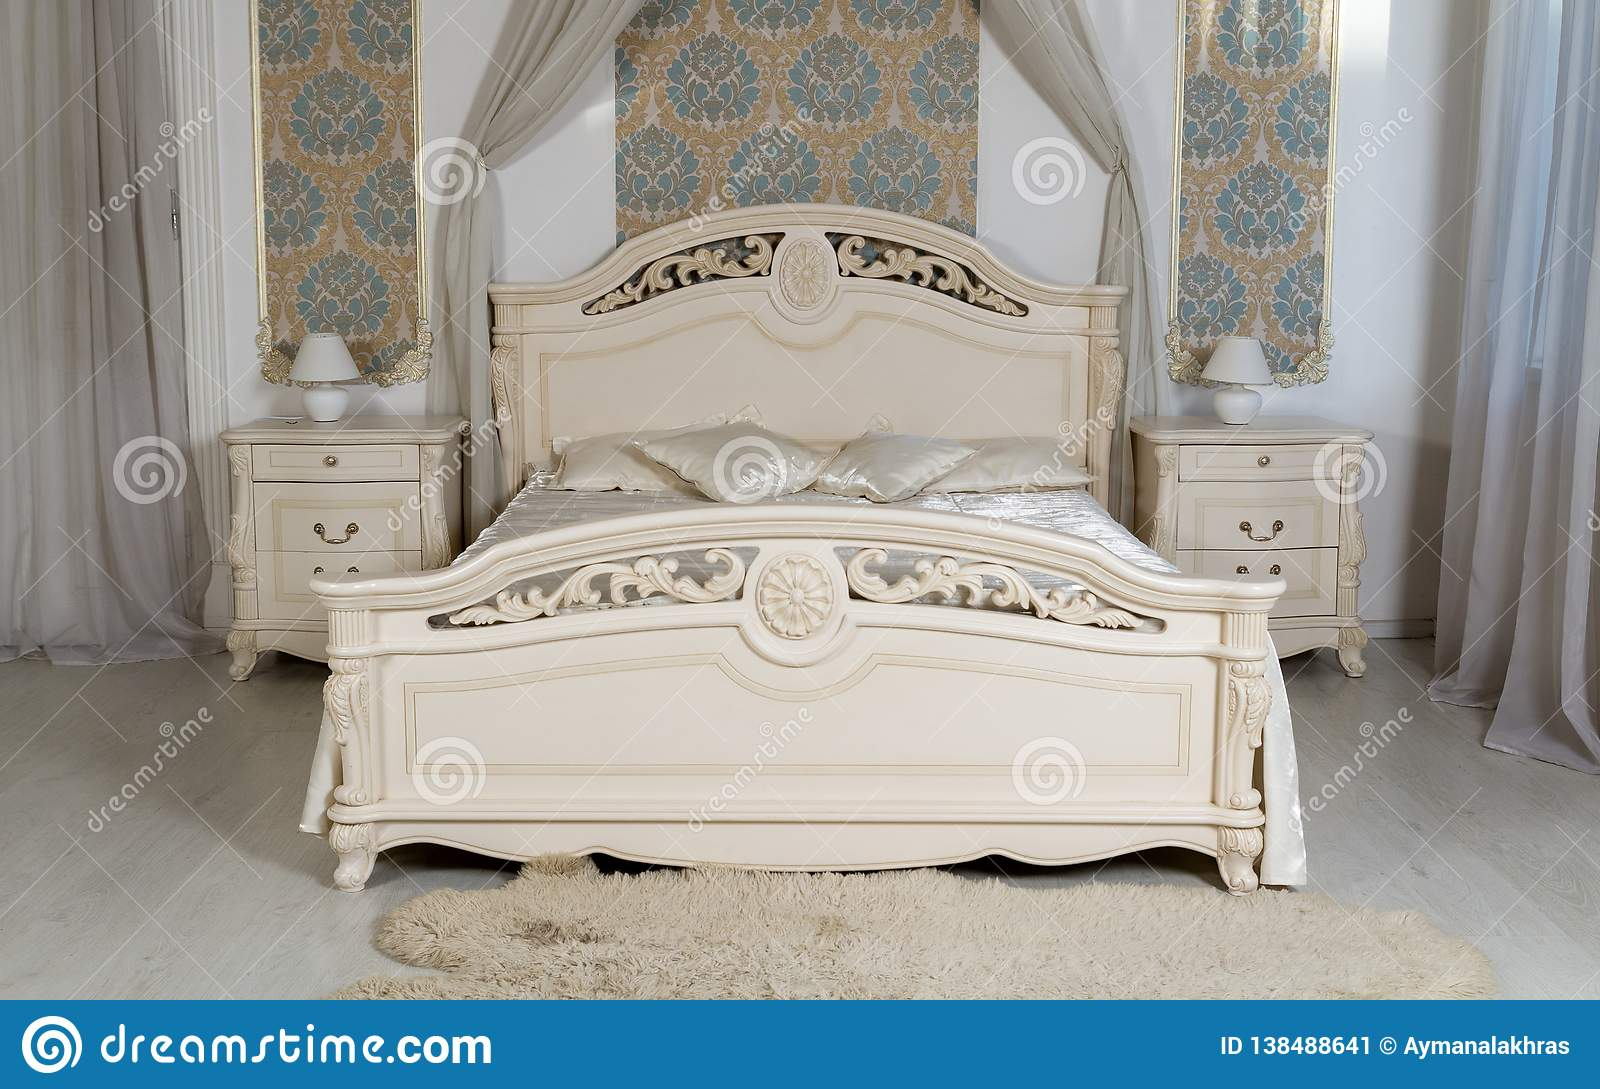 Classic White Bedroom Furniture - King Size Bed With Bedside ...